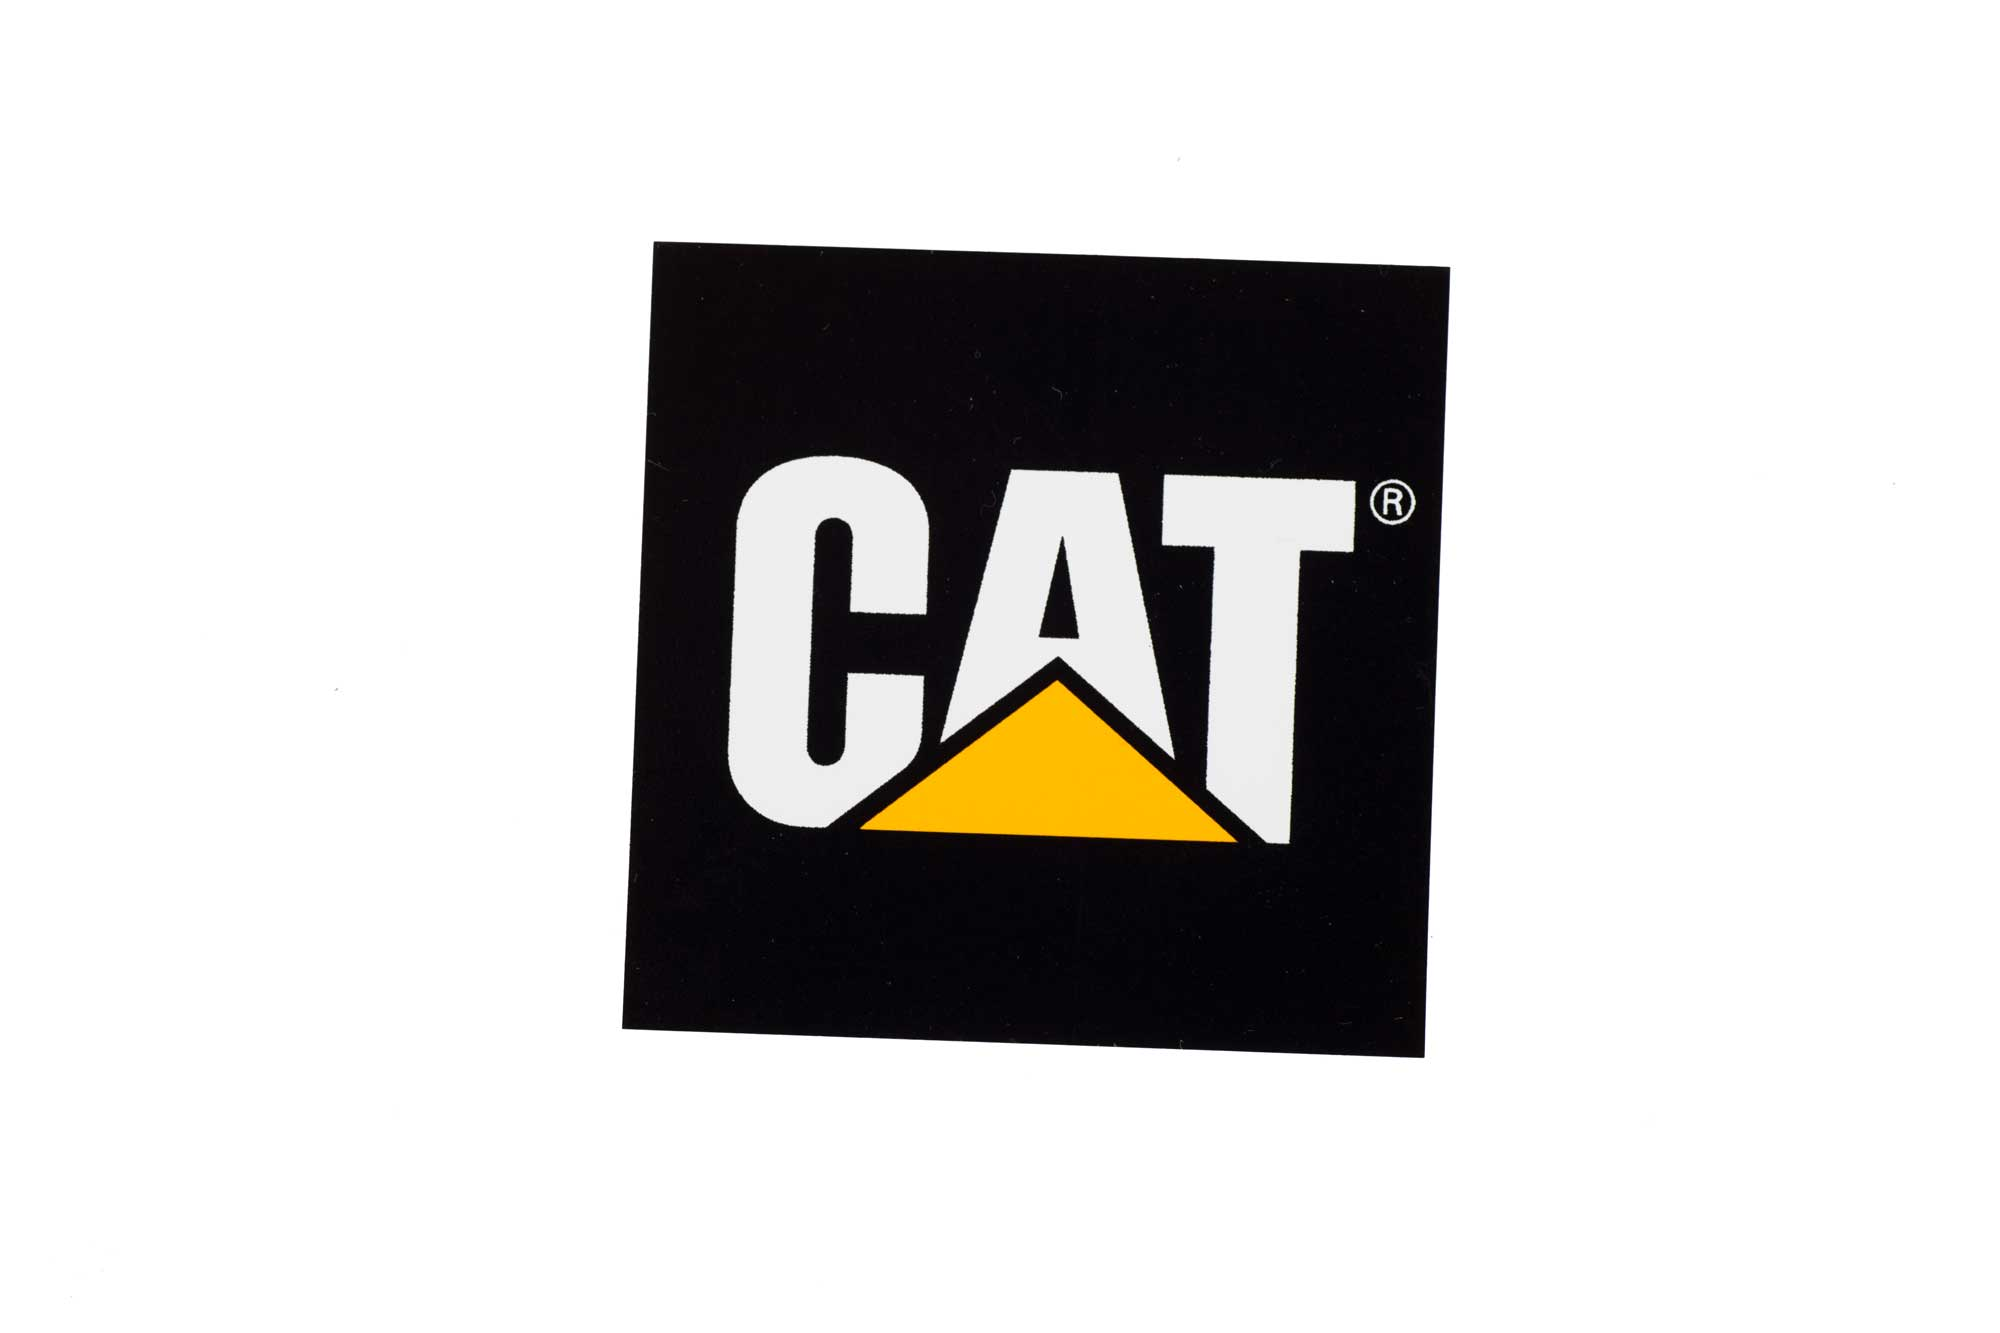 Decal-CAT-square-black